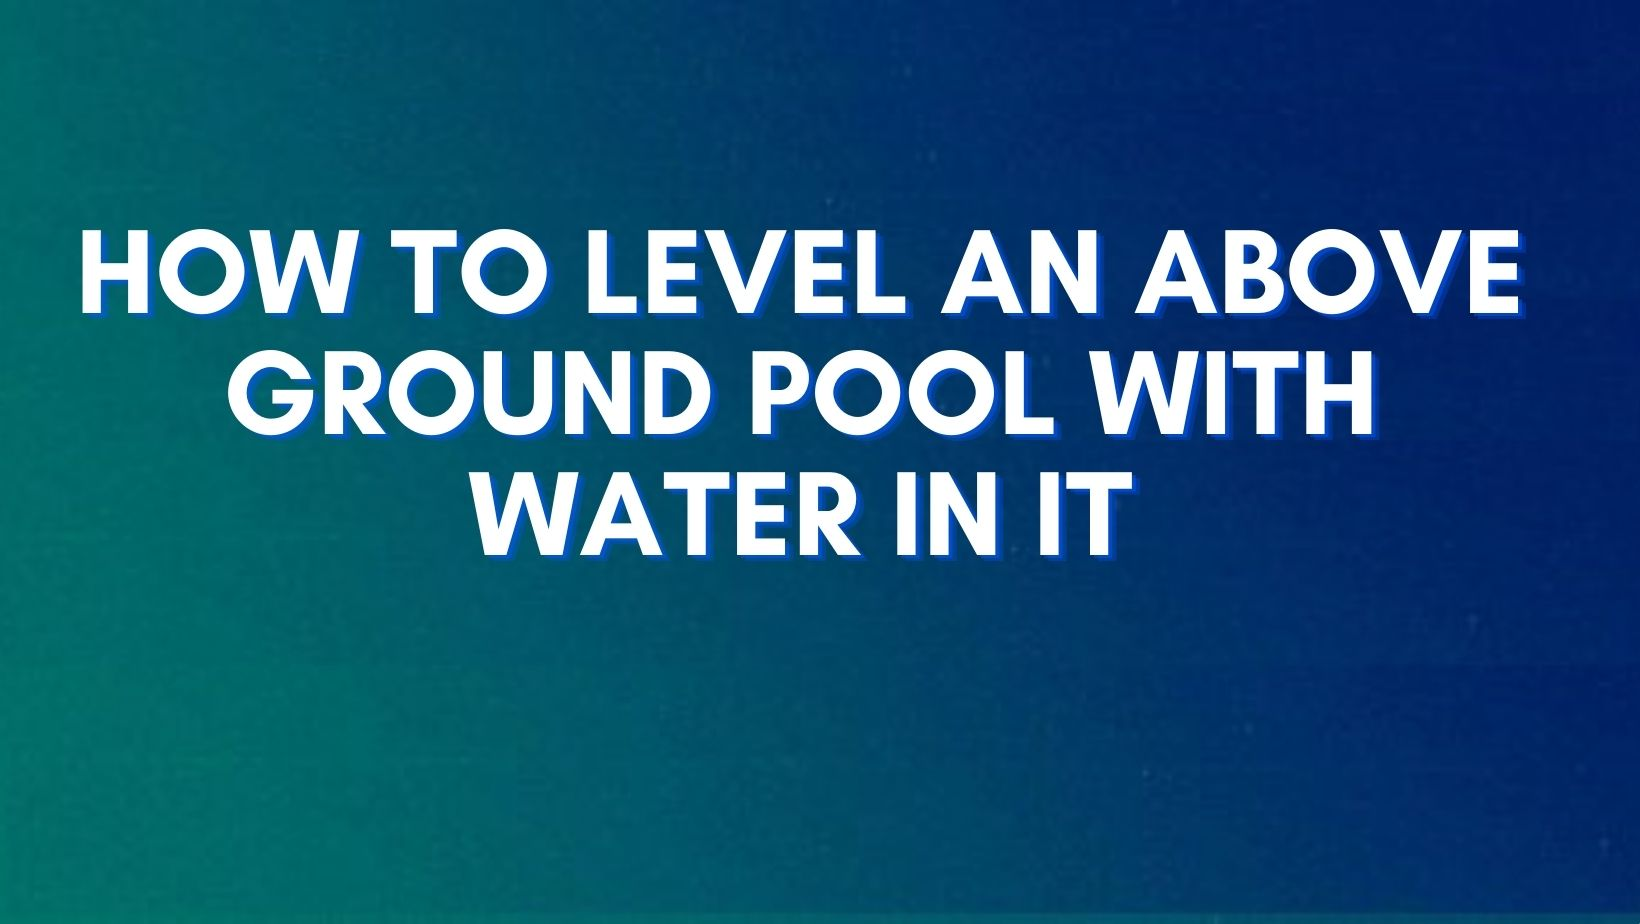 Guide to level an above ground pool without draining water